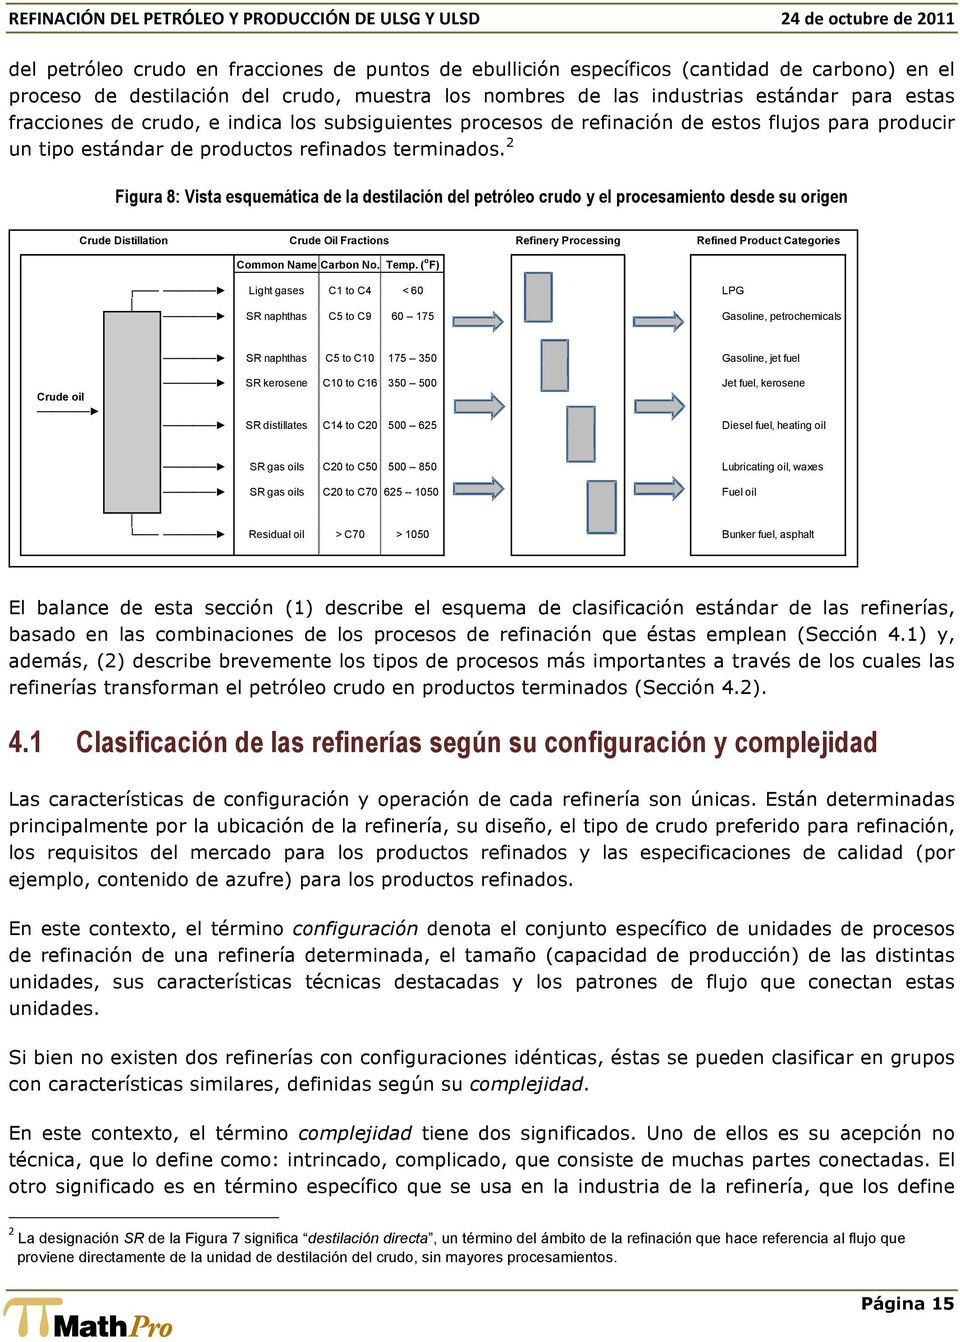 2 Figura 8: Vista esquemática de la destilación del petróleo crudo y el procesamiento desde su origen Crude Distillation Crude Oil Fractions Refinery Processing Refined Product Categories Common Name